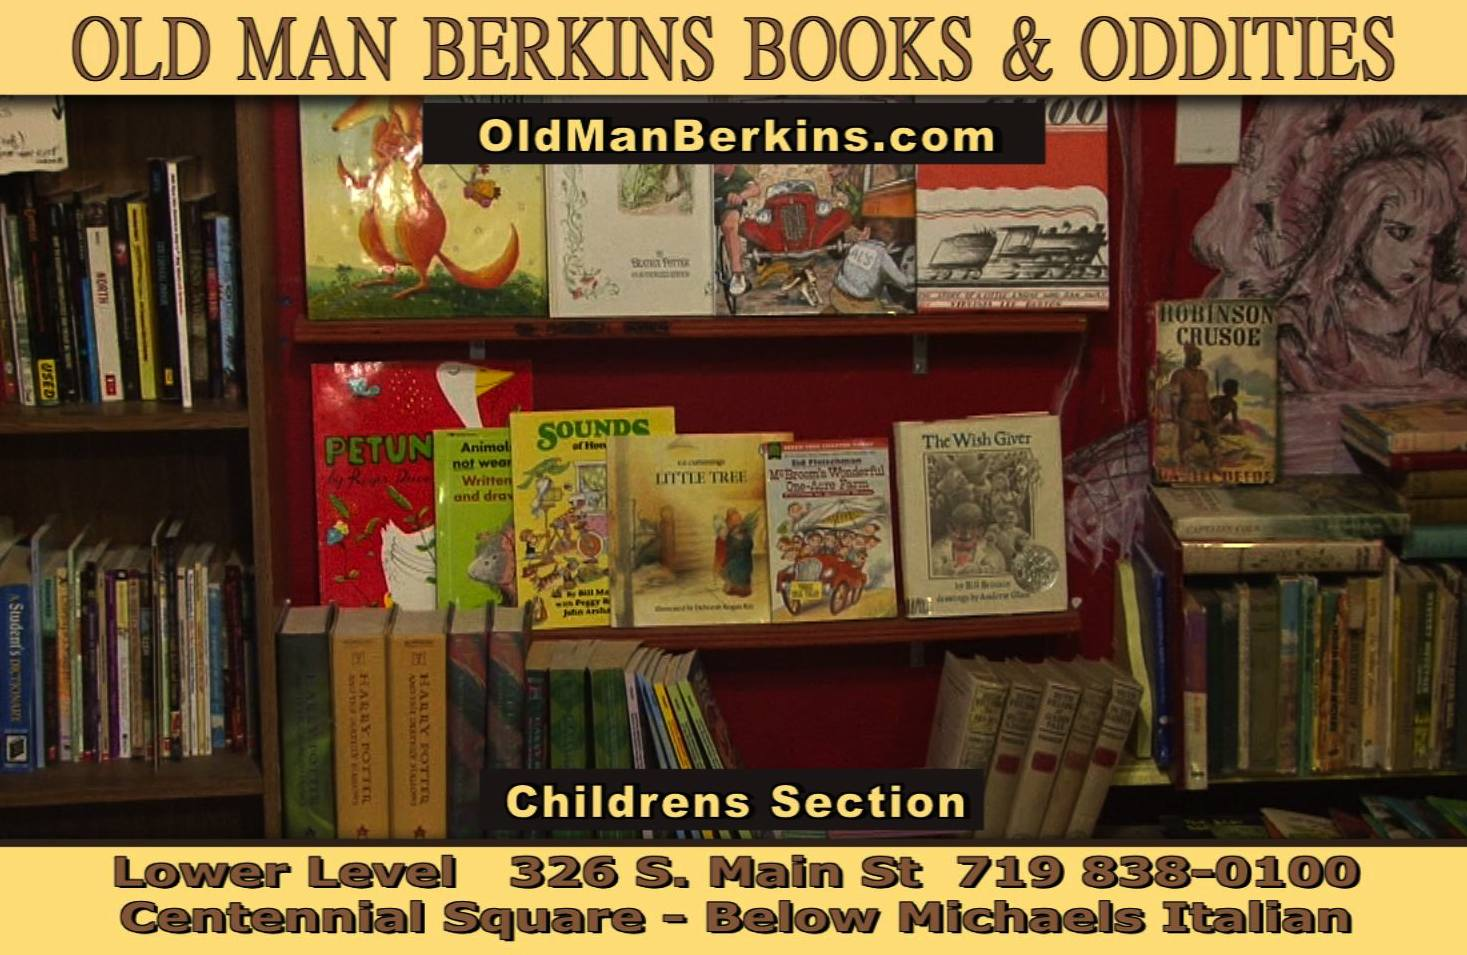 Old Man Berkins Books and Oddities